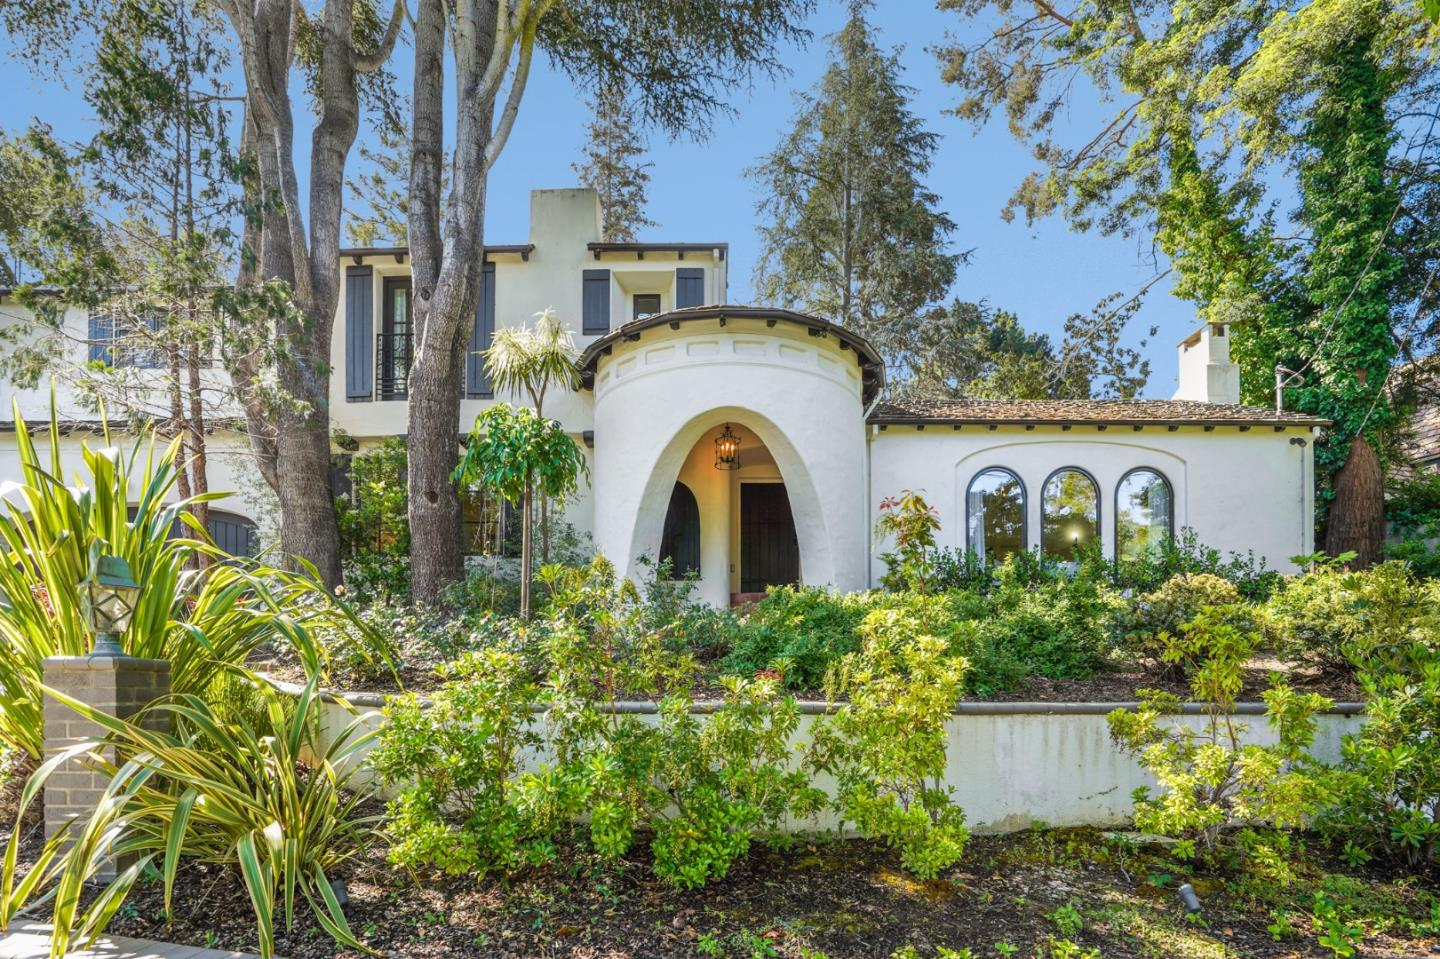 Located in the heart of San Mateo Park, this exceptional Spanish inspired home has been extensively remodeled, while preserving timeless characteristics and charm. Open beam ceilings, arched doorways and fireplace, iron staircase, along with recessed niches, are just some of the classic features that preserve the integrity of the home. This majestical home spans 3130 square feet of living space on one third of an acre of immaculately detailed grounds with a hot tub, vegetable garden, and fruit trees. Features and upgrades include a grand formal living room, beautifully remodeled chef's kitchen that opens to a traditional dining room, au pair bedroom on the main level, and a large family room that opens to the manicured backyard that offers privacy and space for all forms of gatherings. The second level features 3 bedrooms, 2 remodeled baths with detailed artistic tile and radiant heated floors in the primary bathroom. The floor is complete with a bonus office/nursery. Welcome Home!